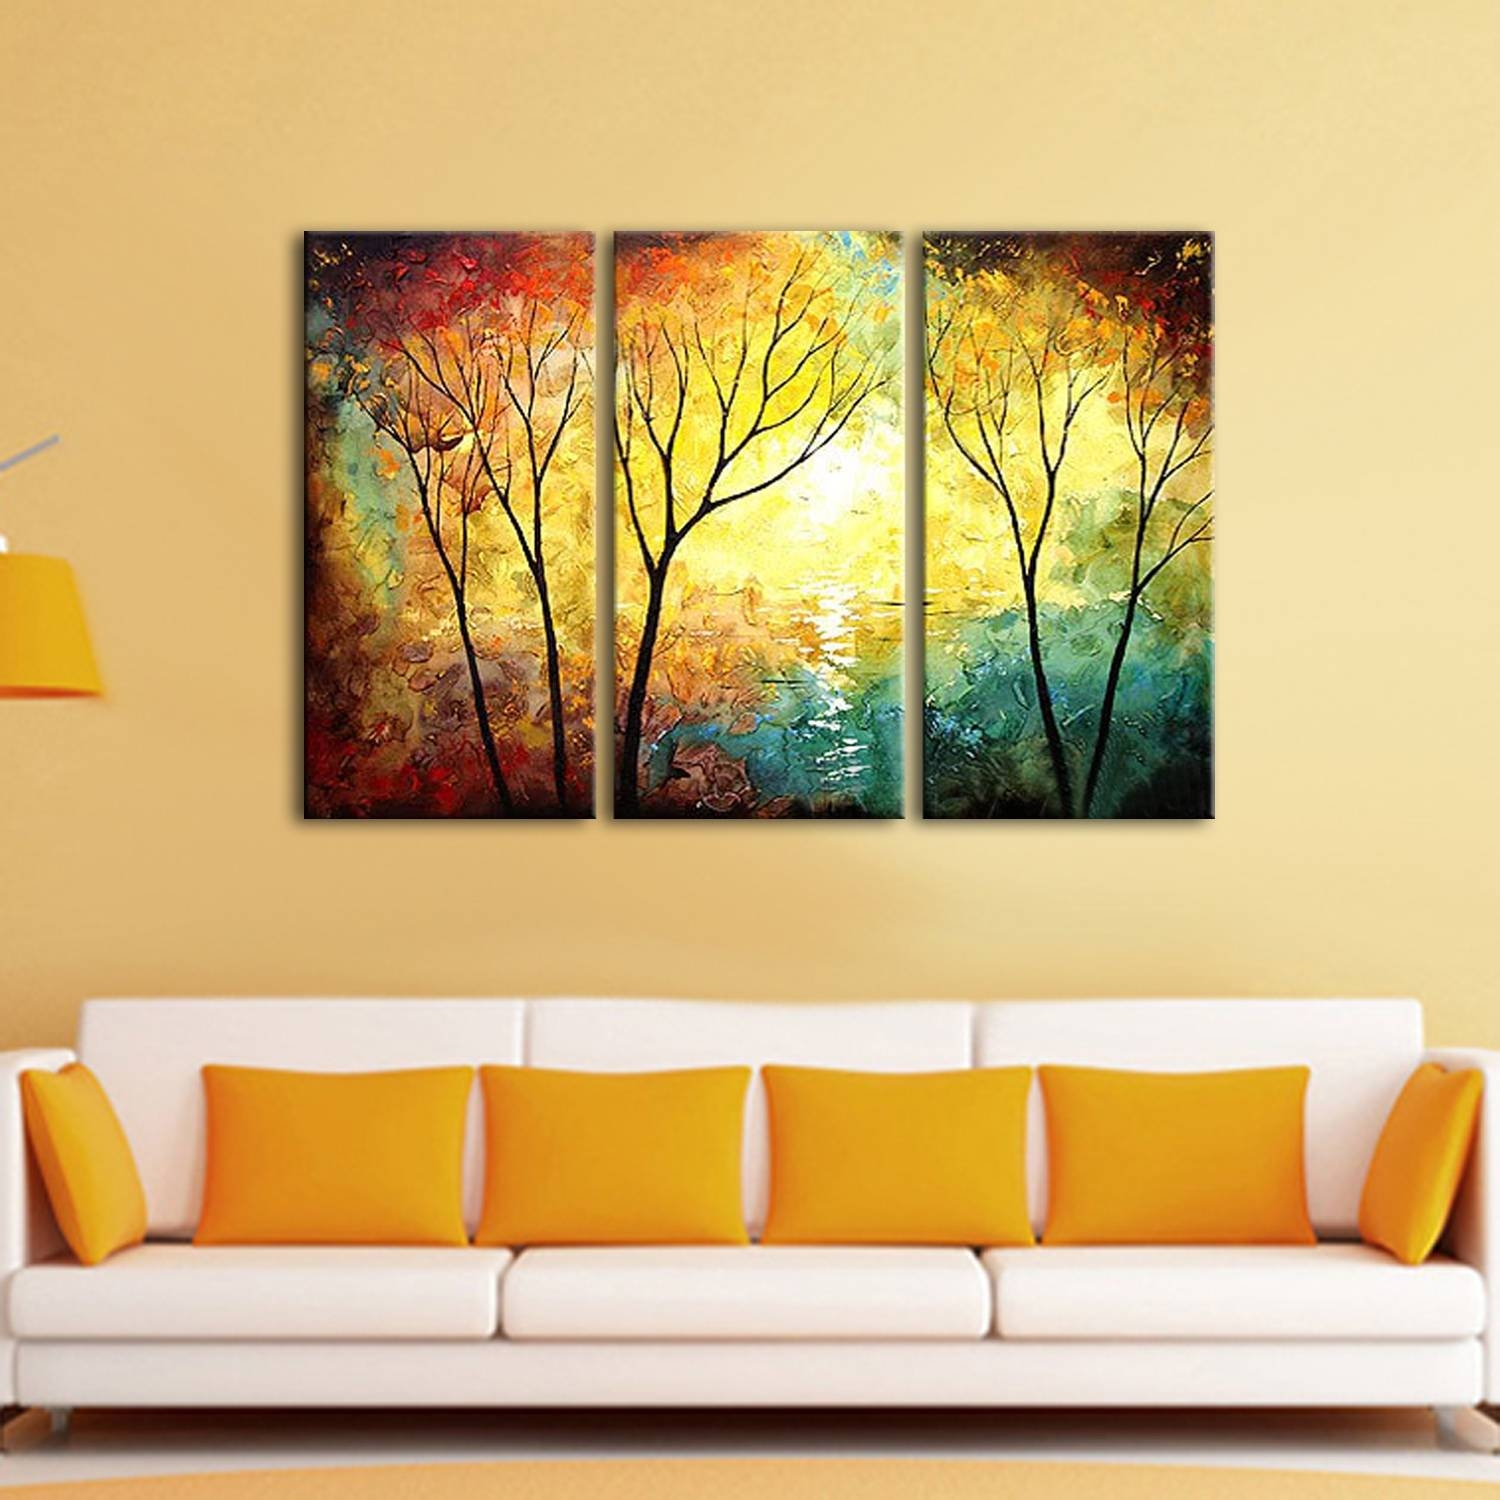 3 Panel Set Wall Art Painting, Yellow Red Tree Oil Painting,oil Inside Most Recently Released Three Panel Wall Art (View 13 of 20)